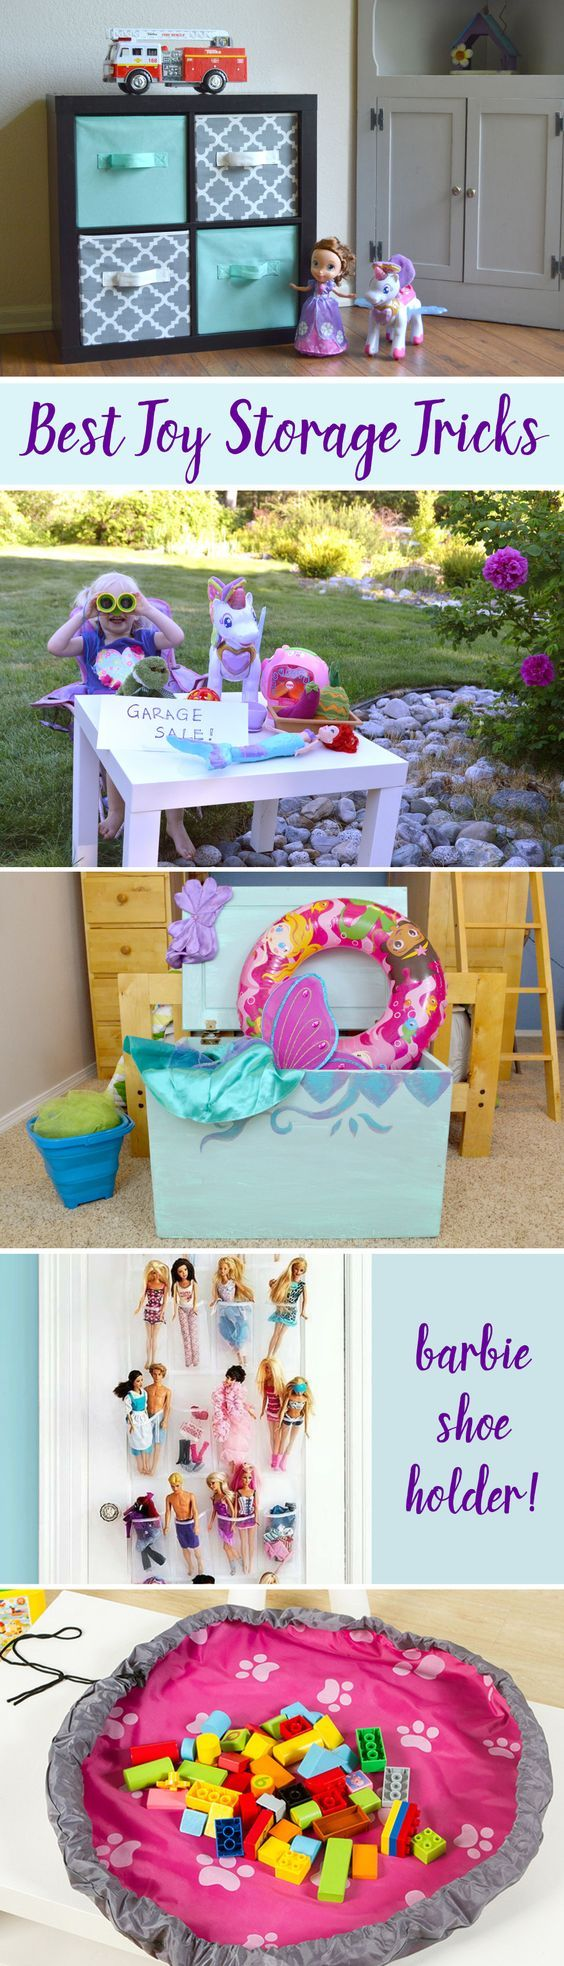 Organize Your Kids Toys With These Creative Toy Storage Tricks And  Solutions To Cut The Clutter